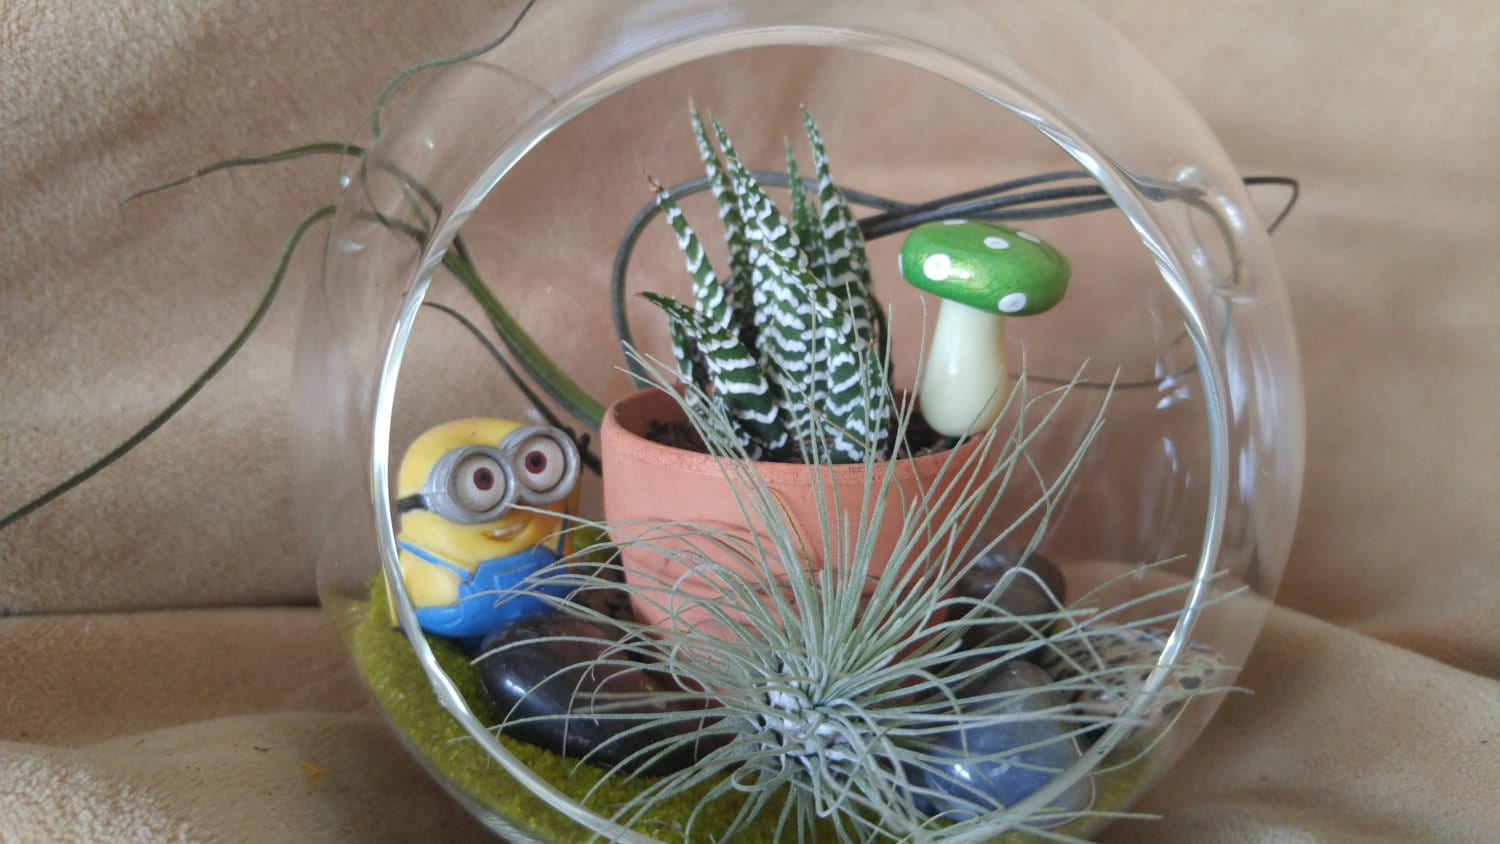 The Minions Terrarium Kit 5 5 Inch Glass Globe Terrarium With Zebra